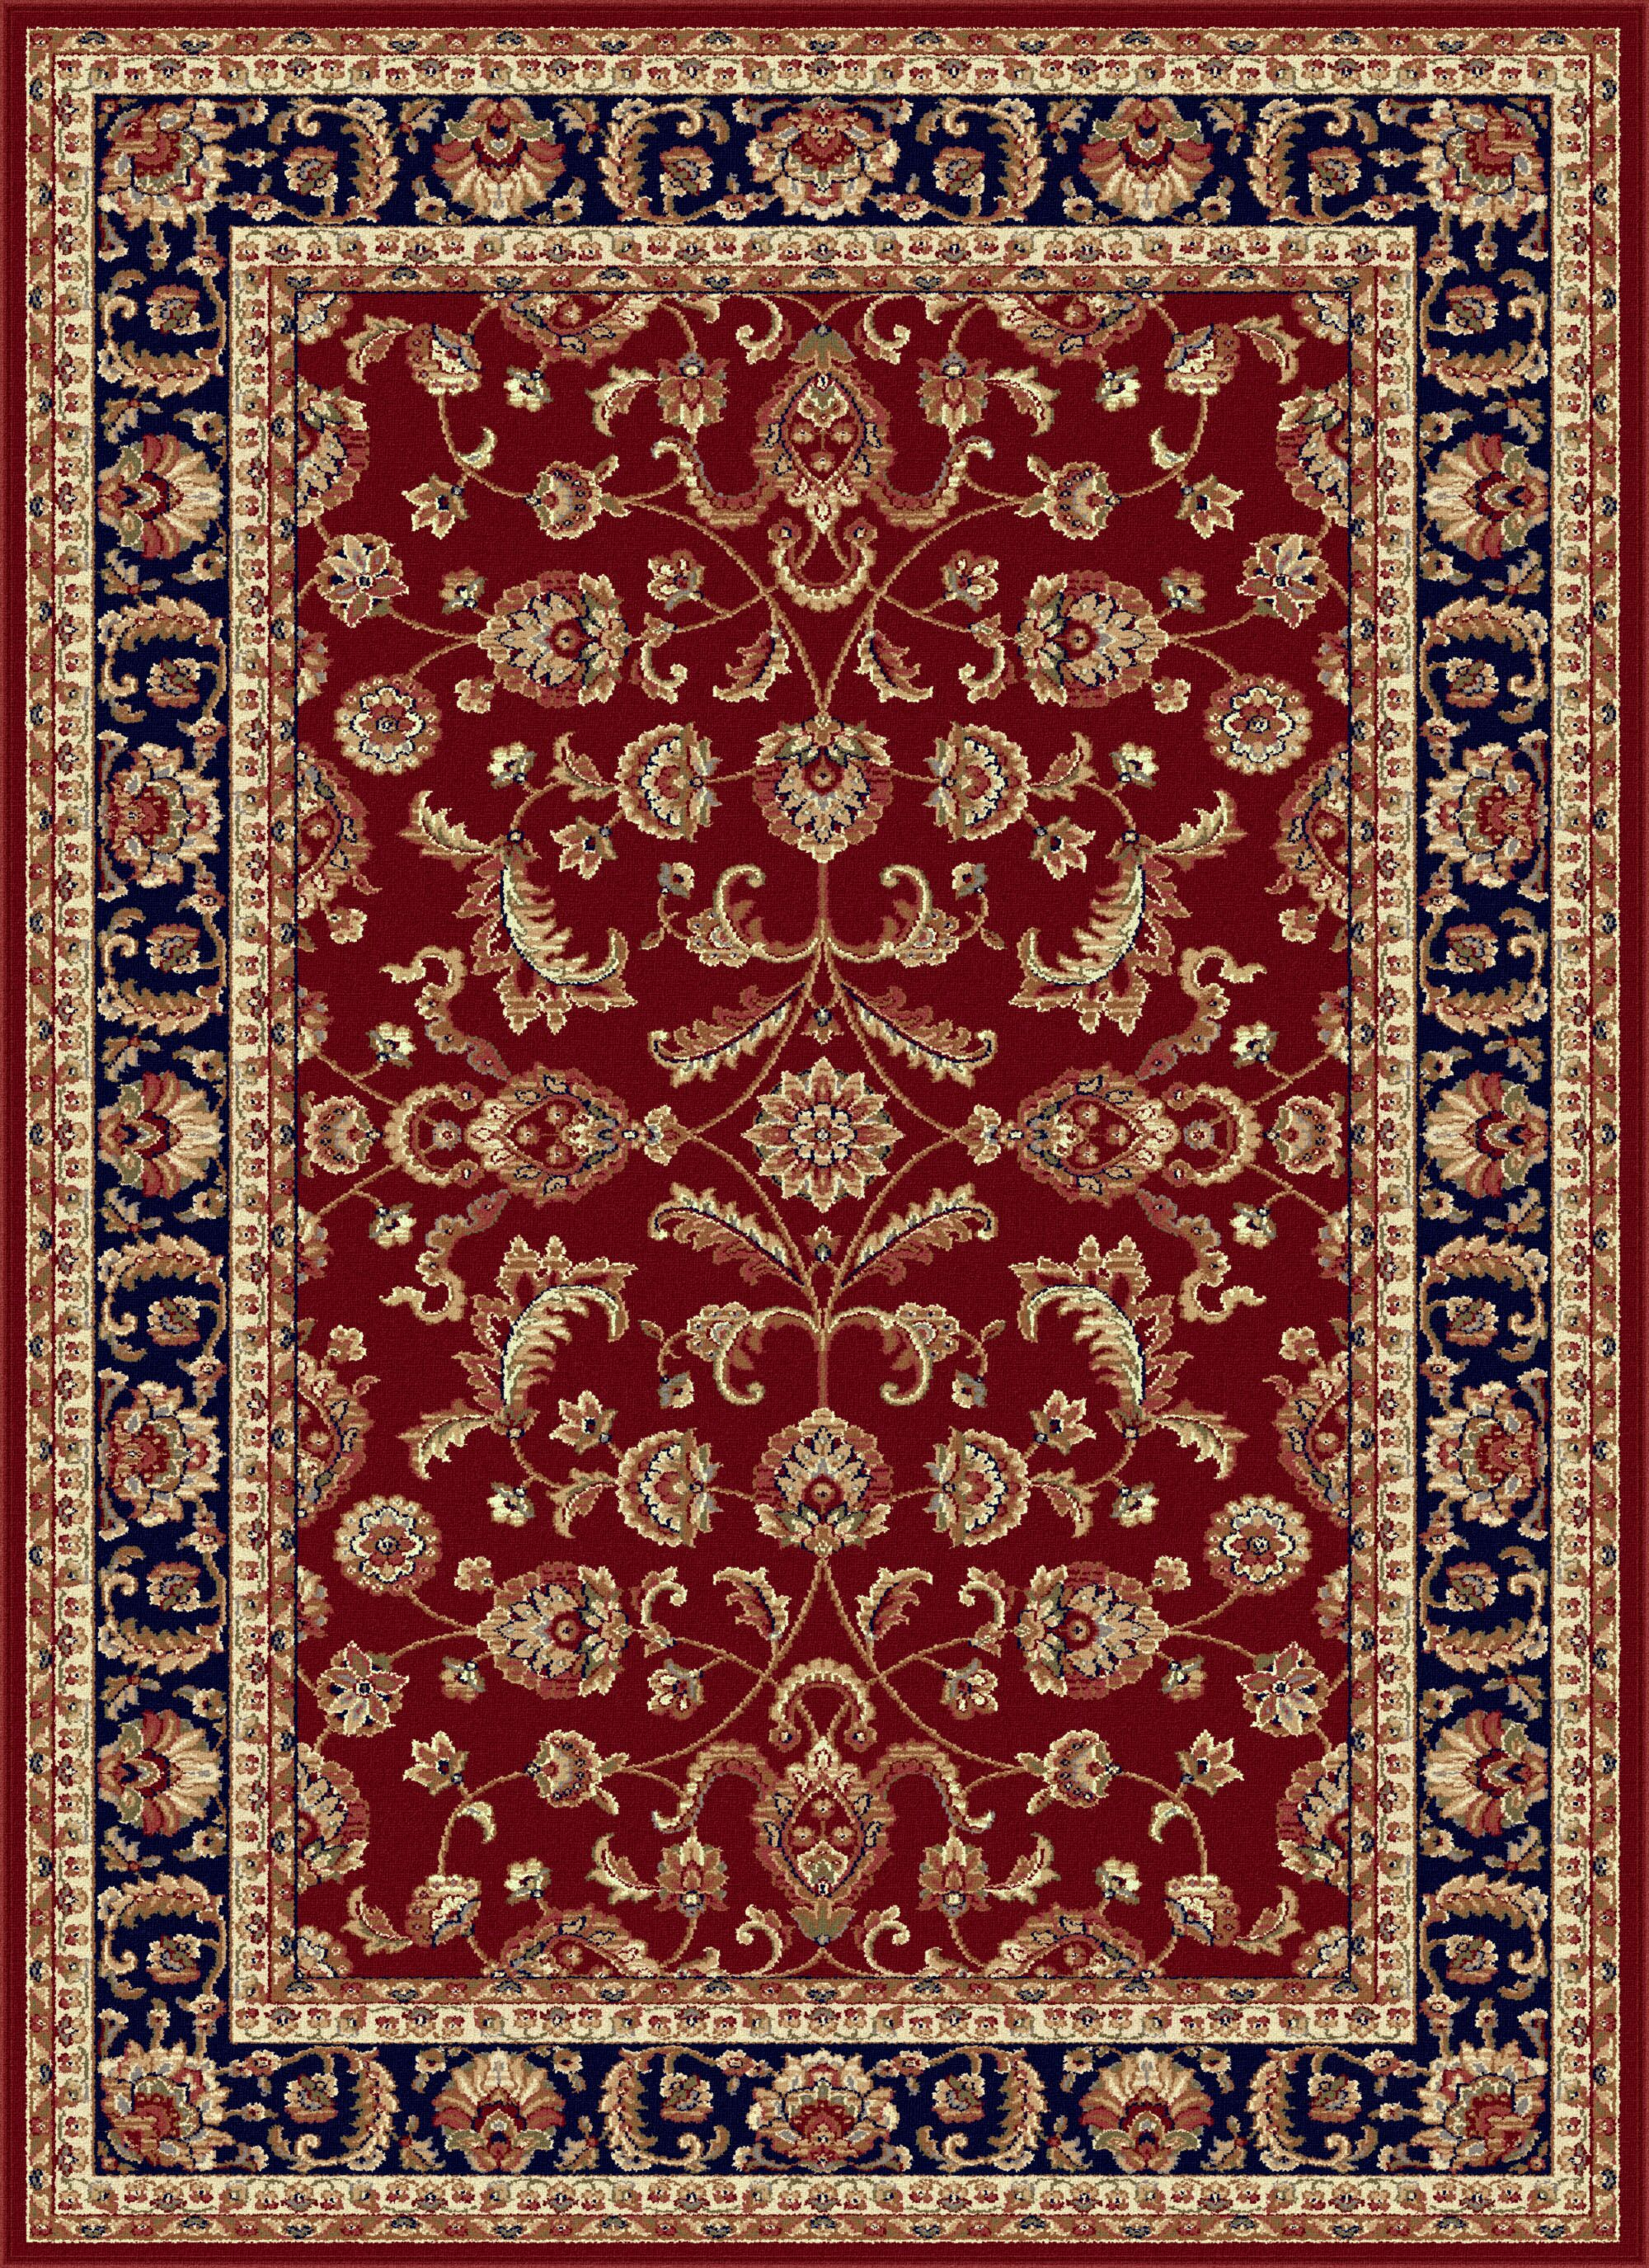 Clarence Red/Navy Blue Area Rug Rug Size: 6'7'' x 9'6''